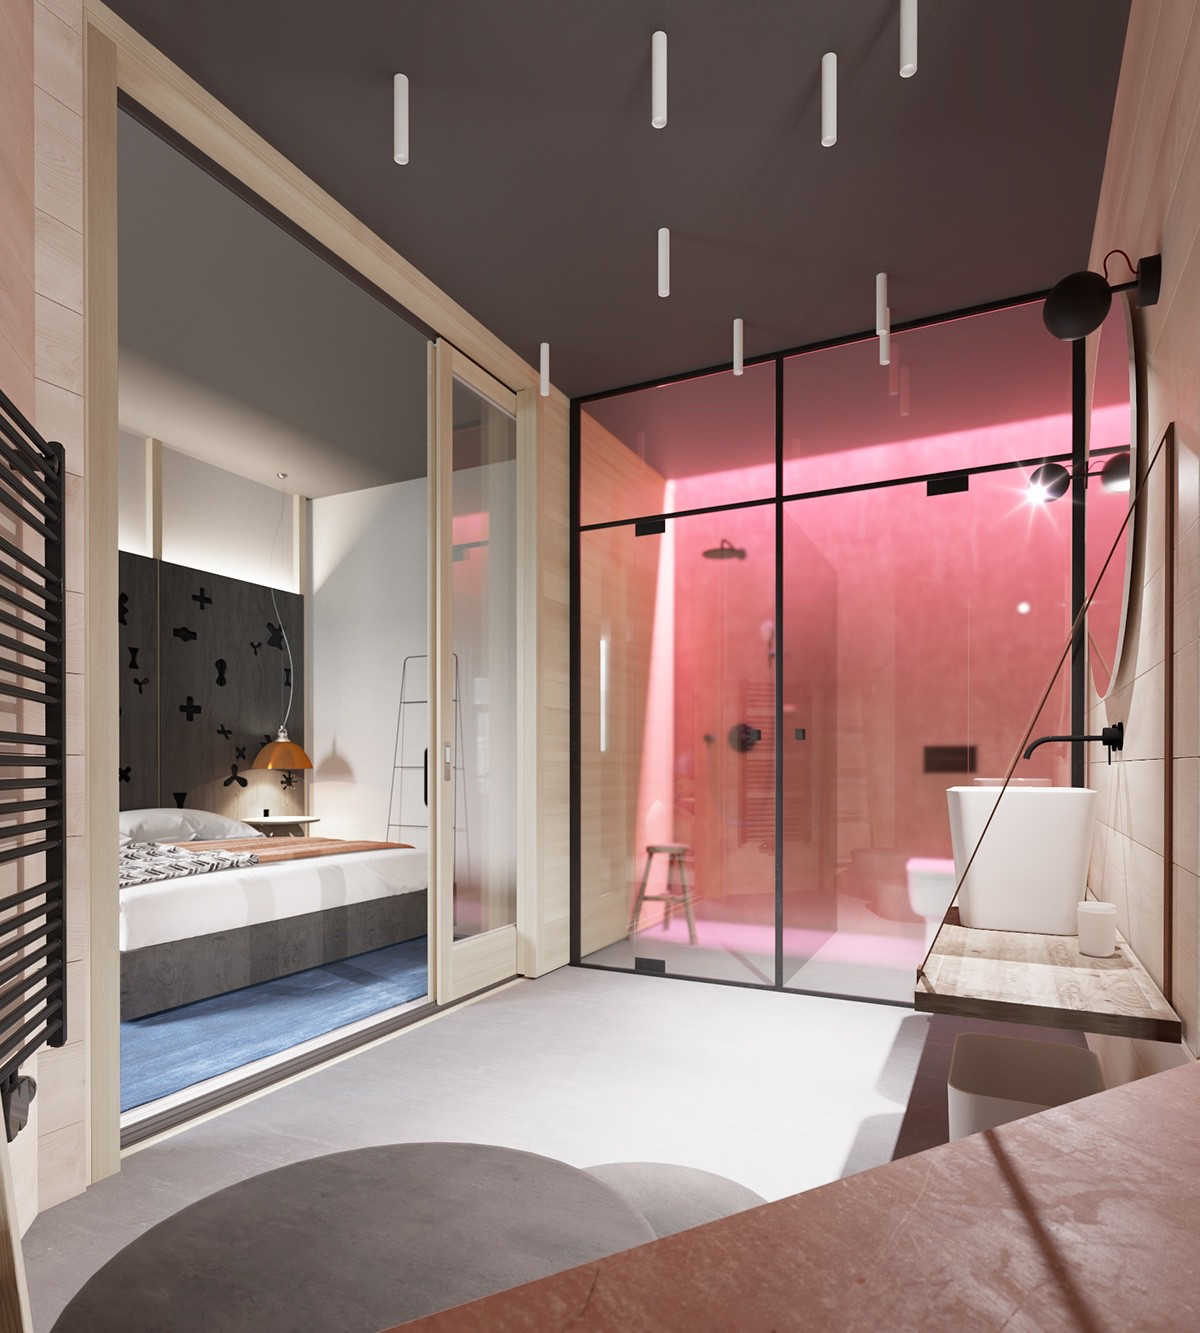 Bathroom Design Modern - A sleek apartment the divides rooms creatively